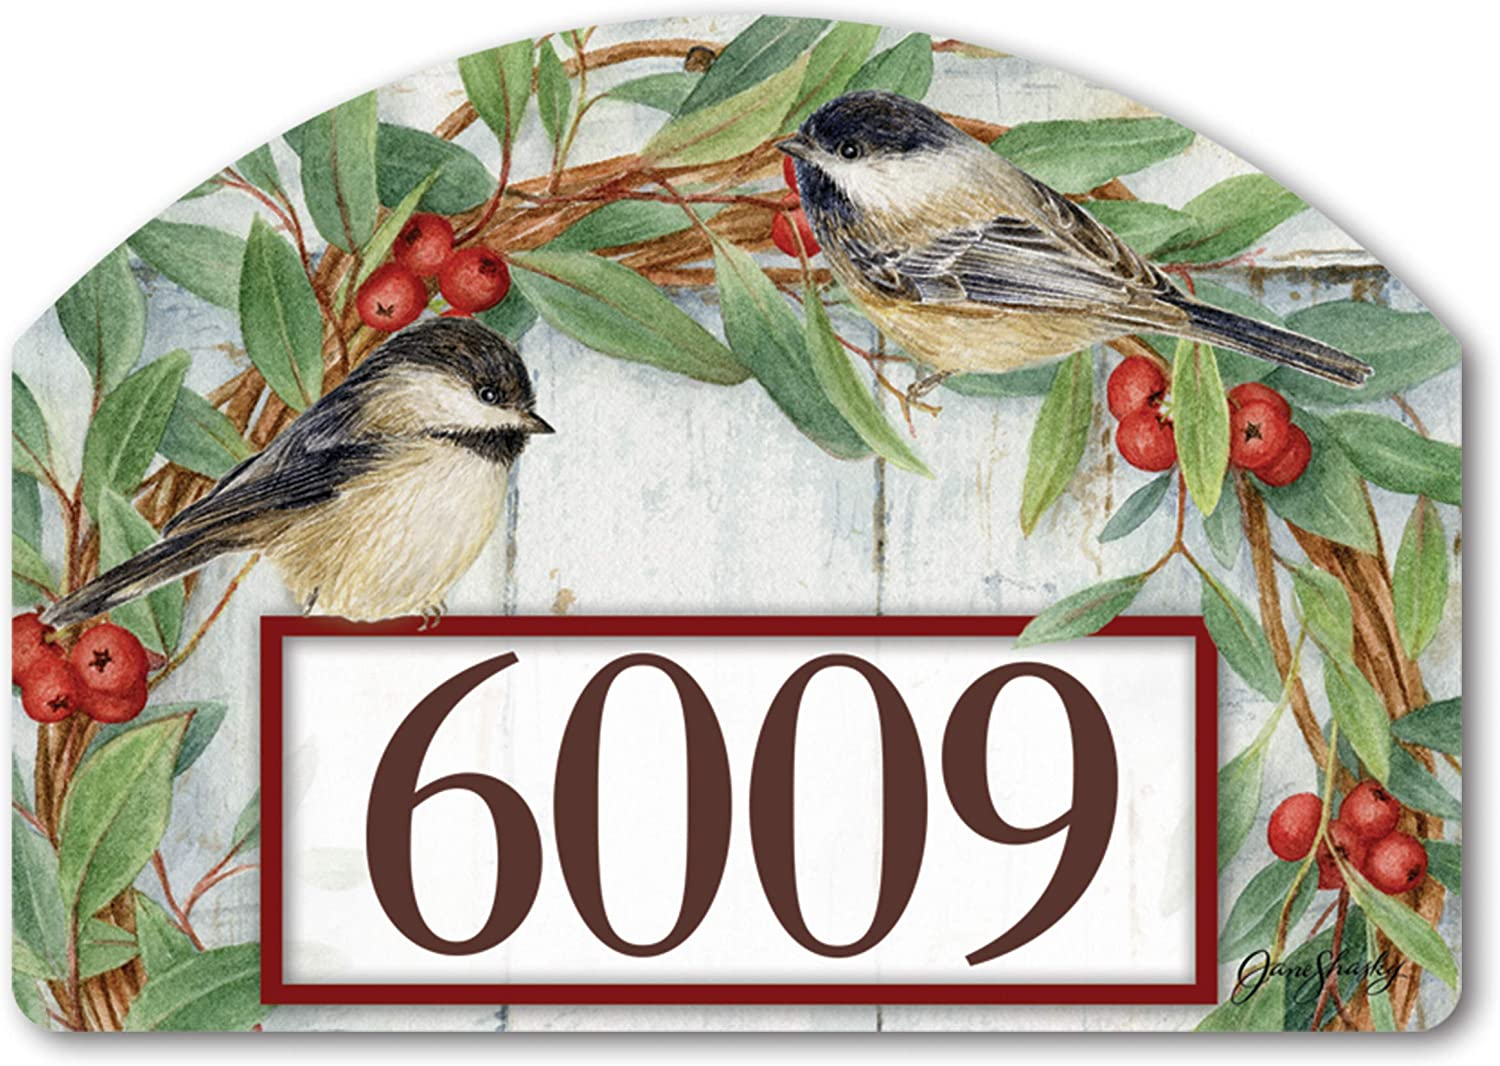 Yard DeSigns Studio M Chickadee Wreath Fall/Winter Decorative Address Marker Yard Sign Magnet, Made in USA, Superior Weather Durability, 14 x 10 Inches